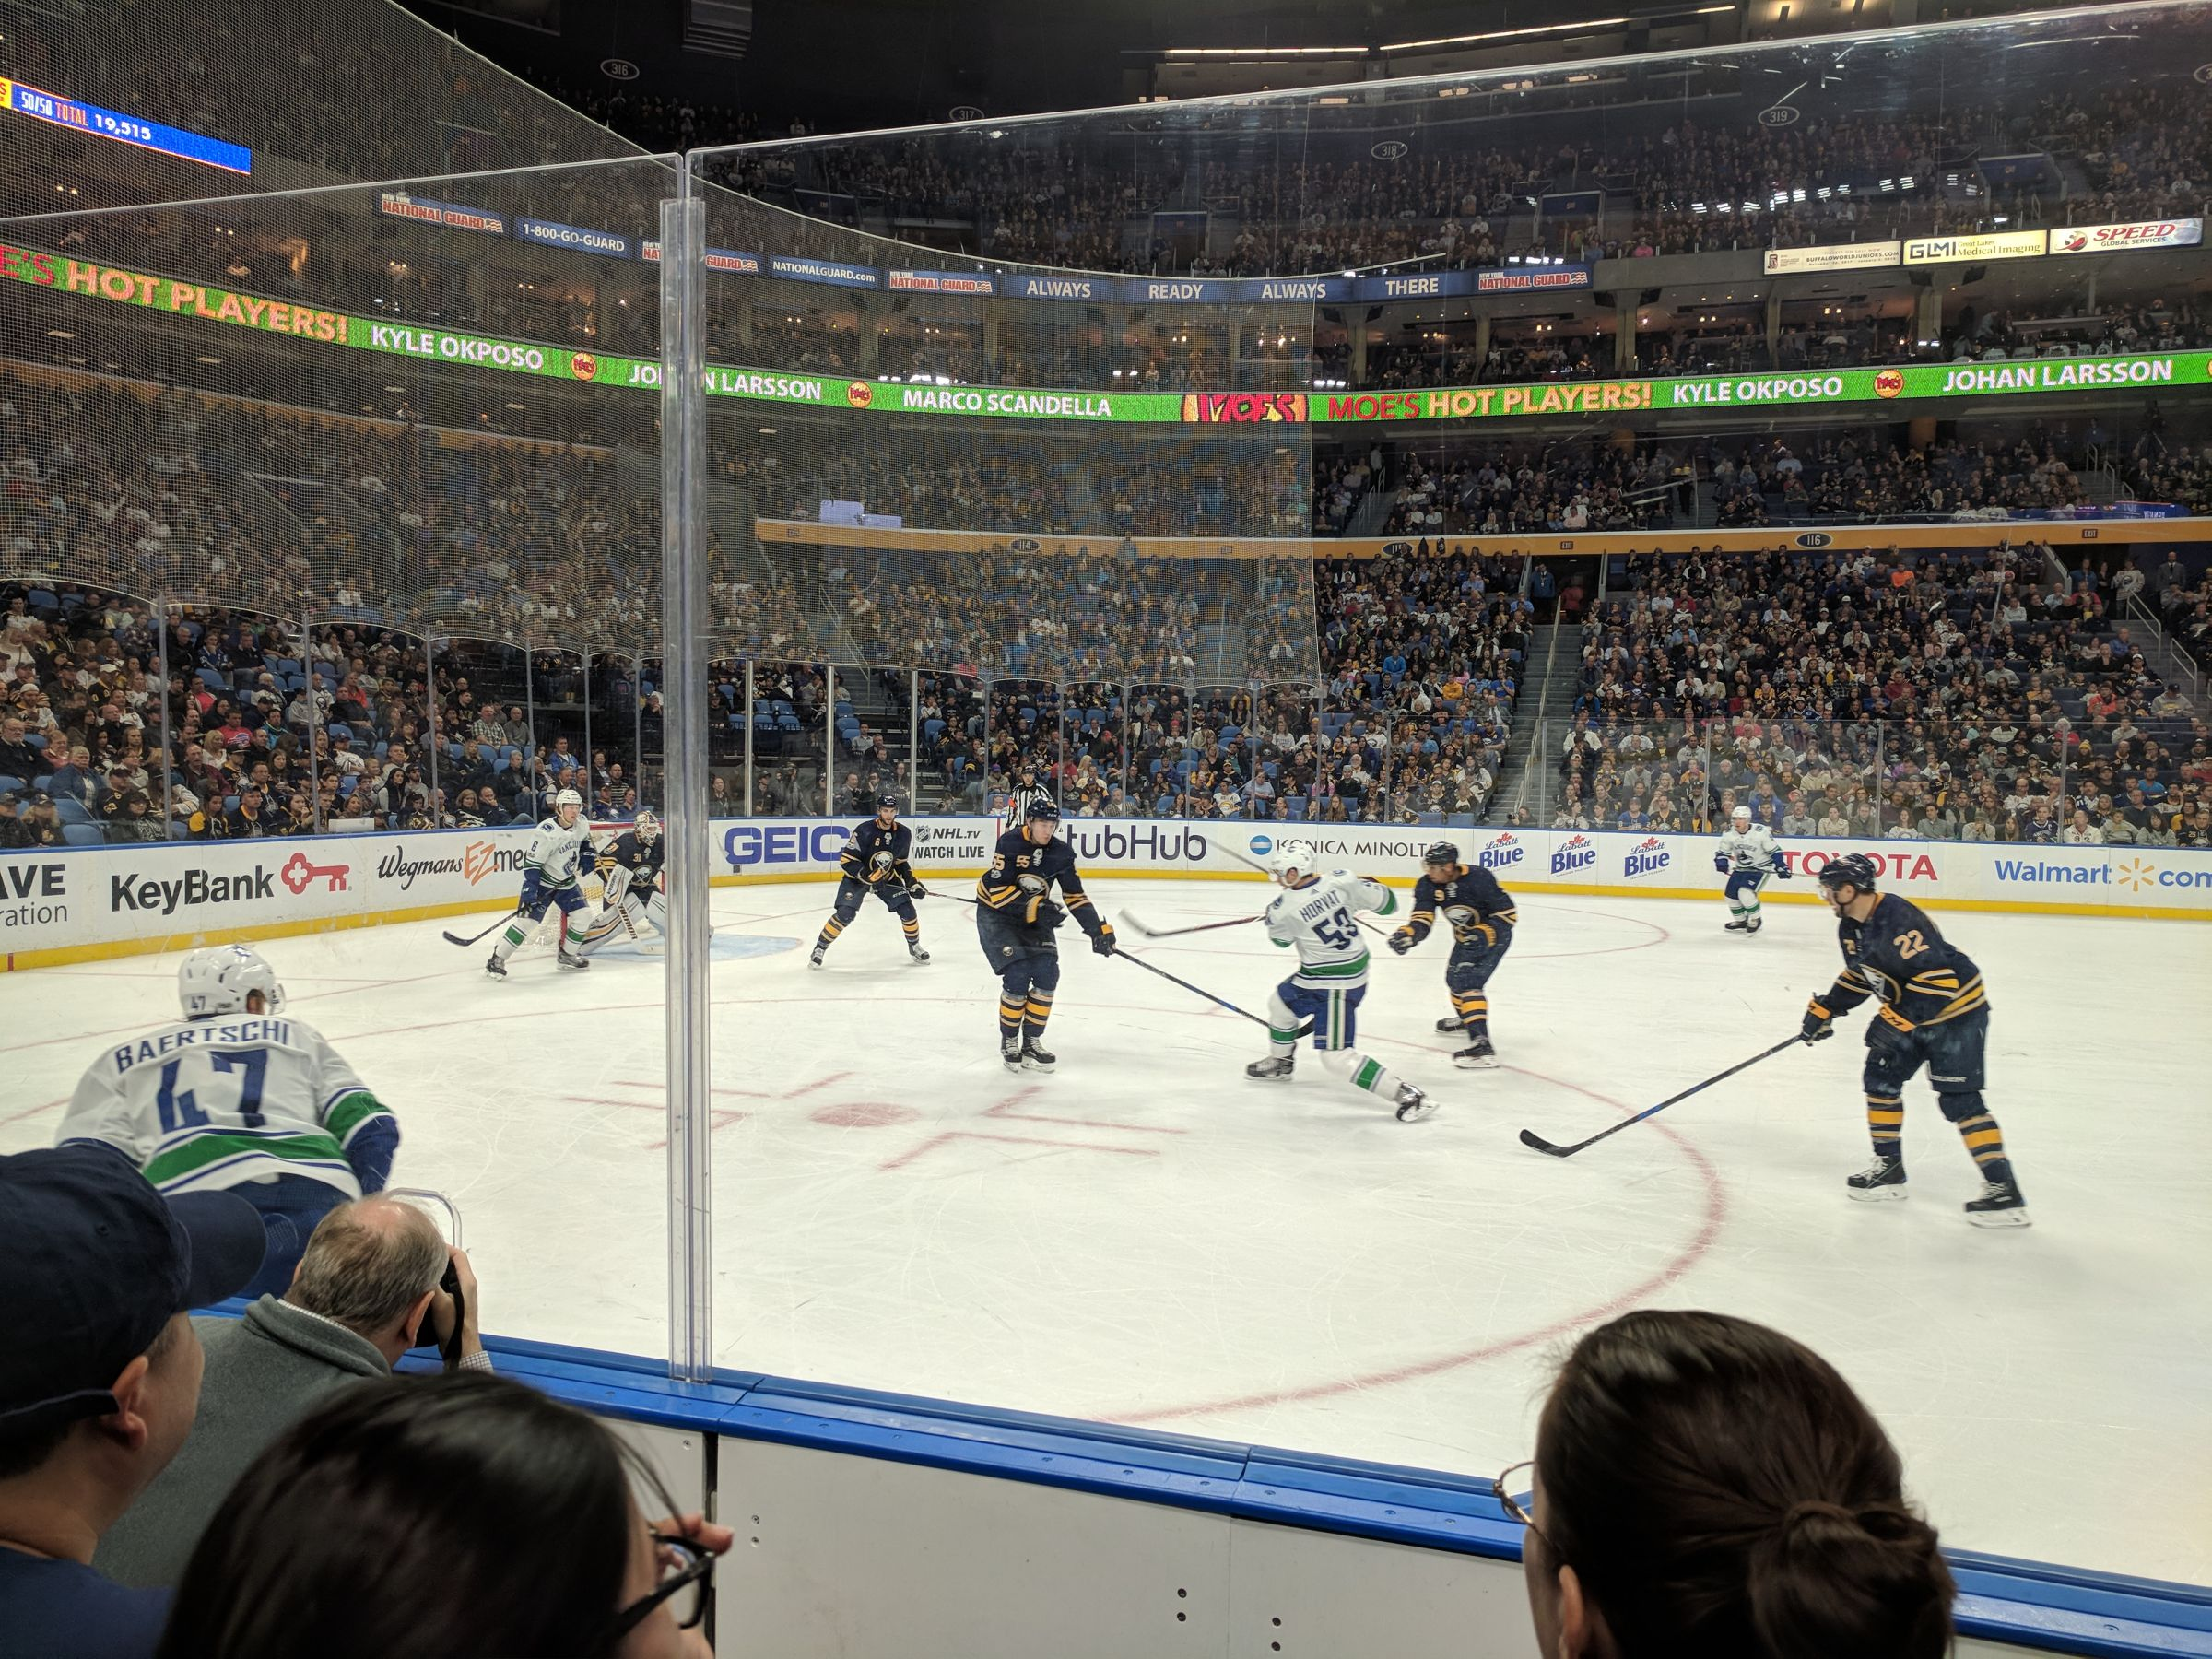 Buffalo Sabres Seat View for KeyBank Center Section 106, Row 3, Seat 20